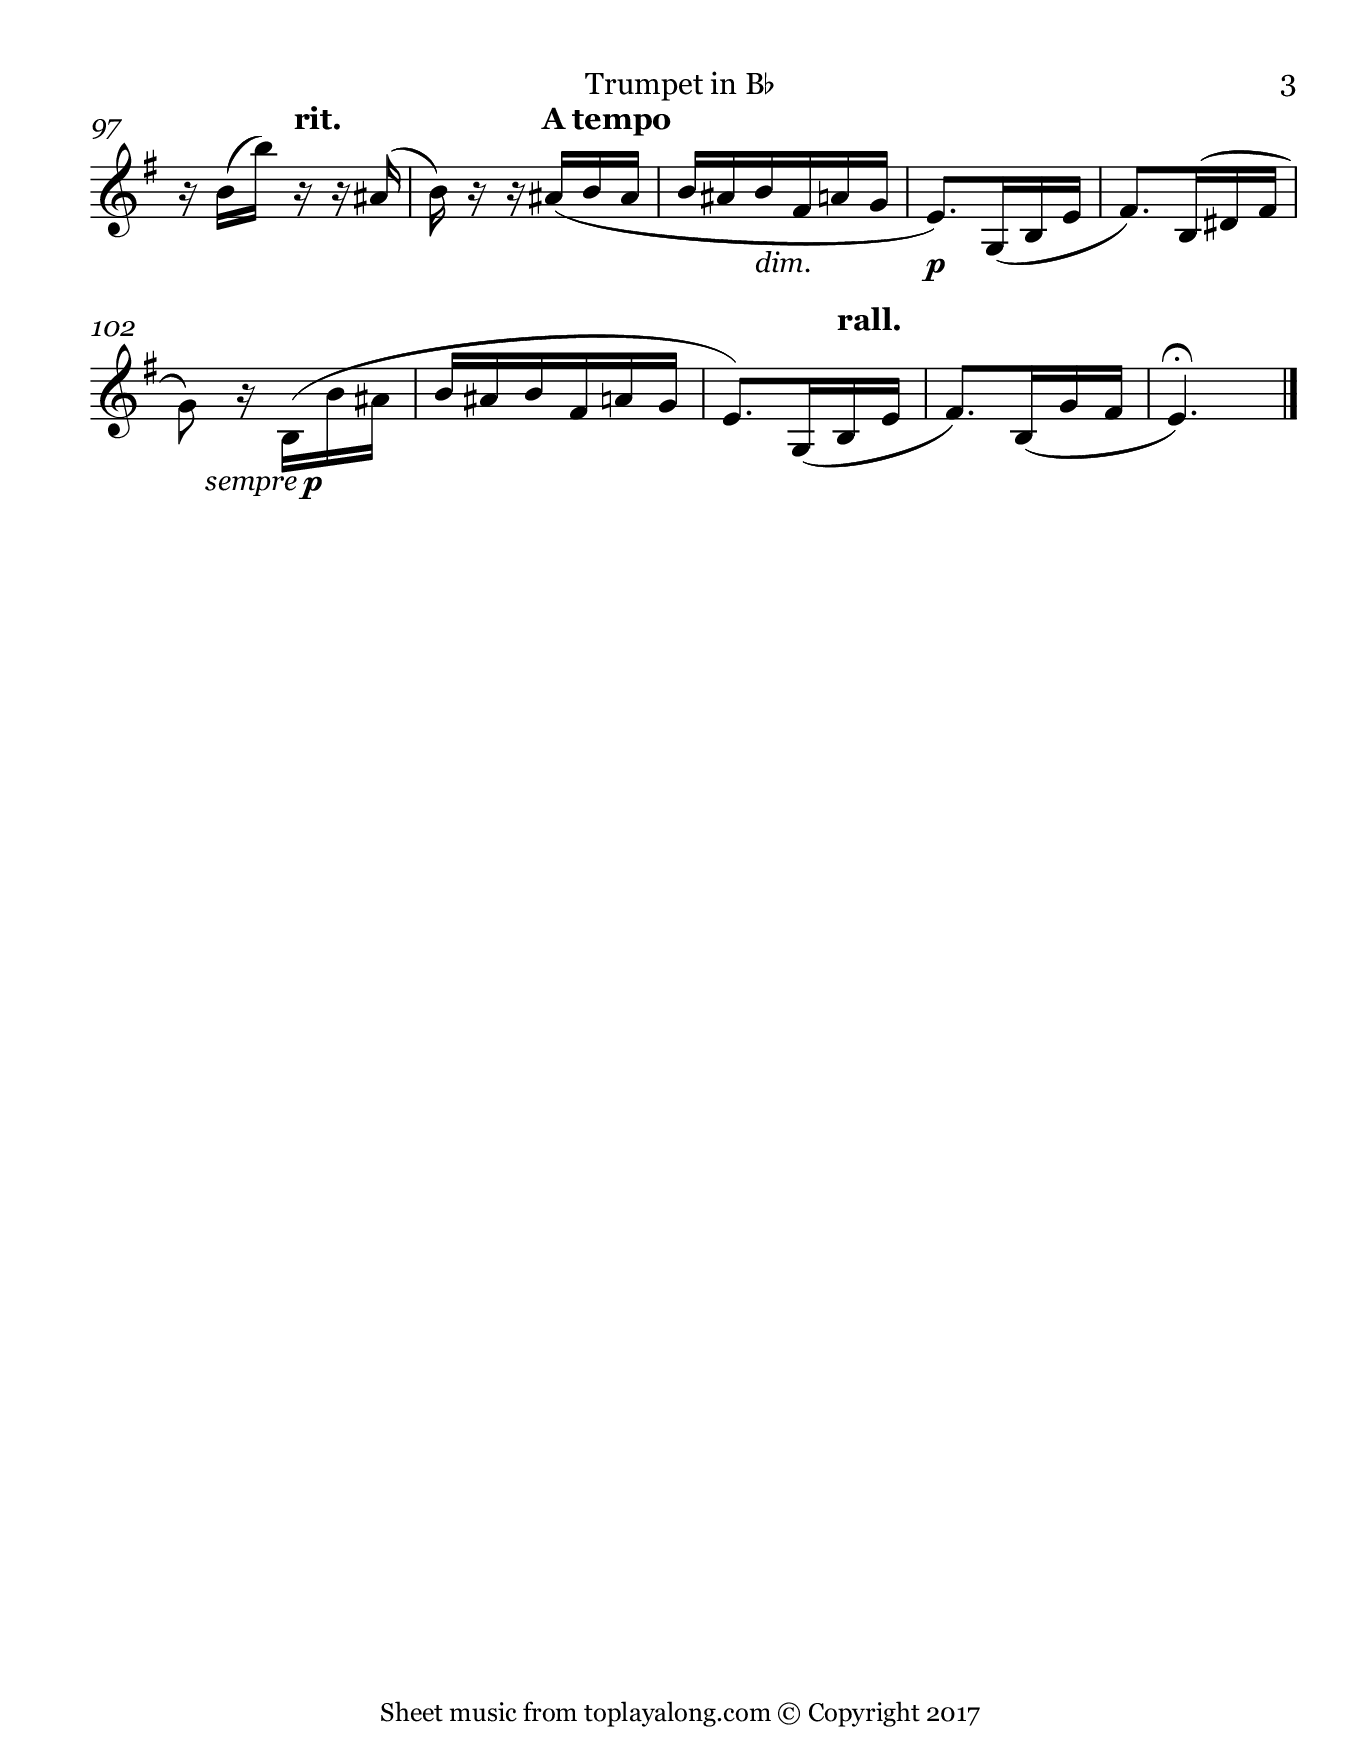 Für Elise by Beethoven. Sheet music for Trumpet, page 3.